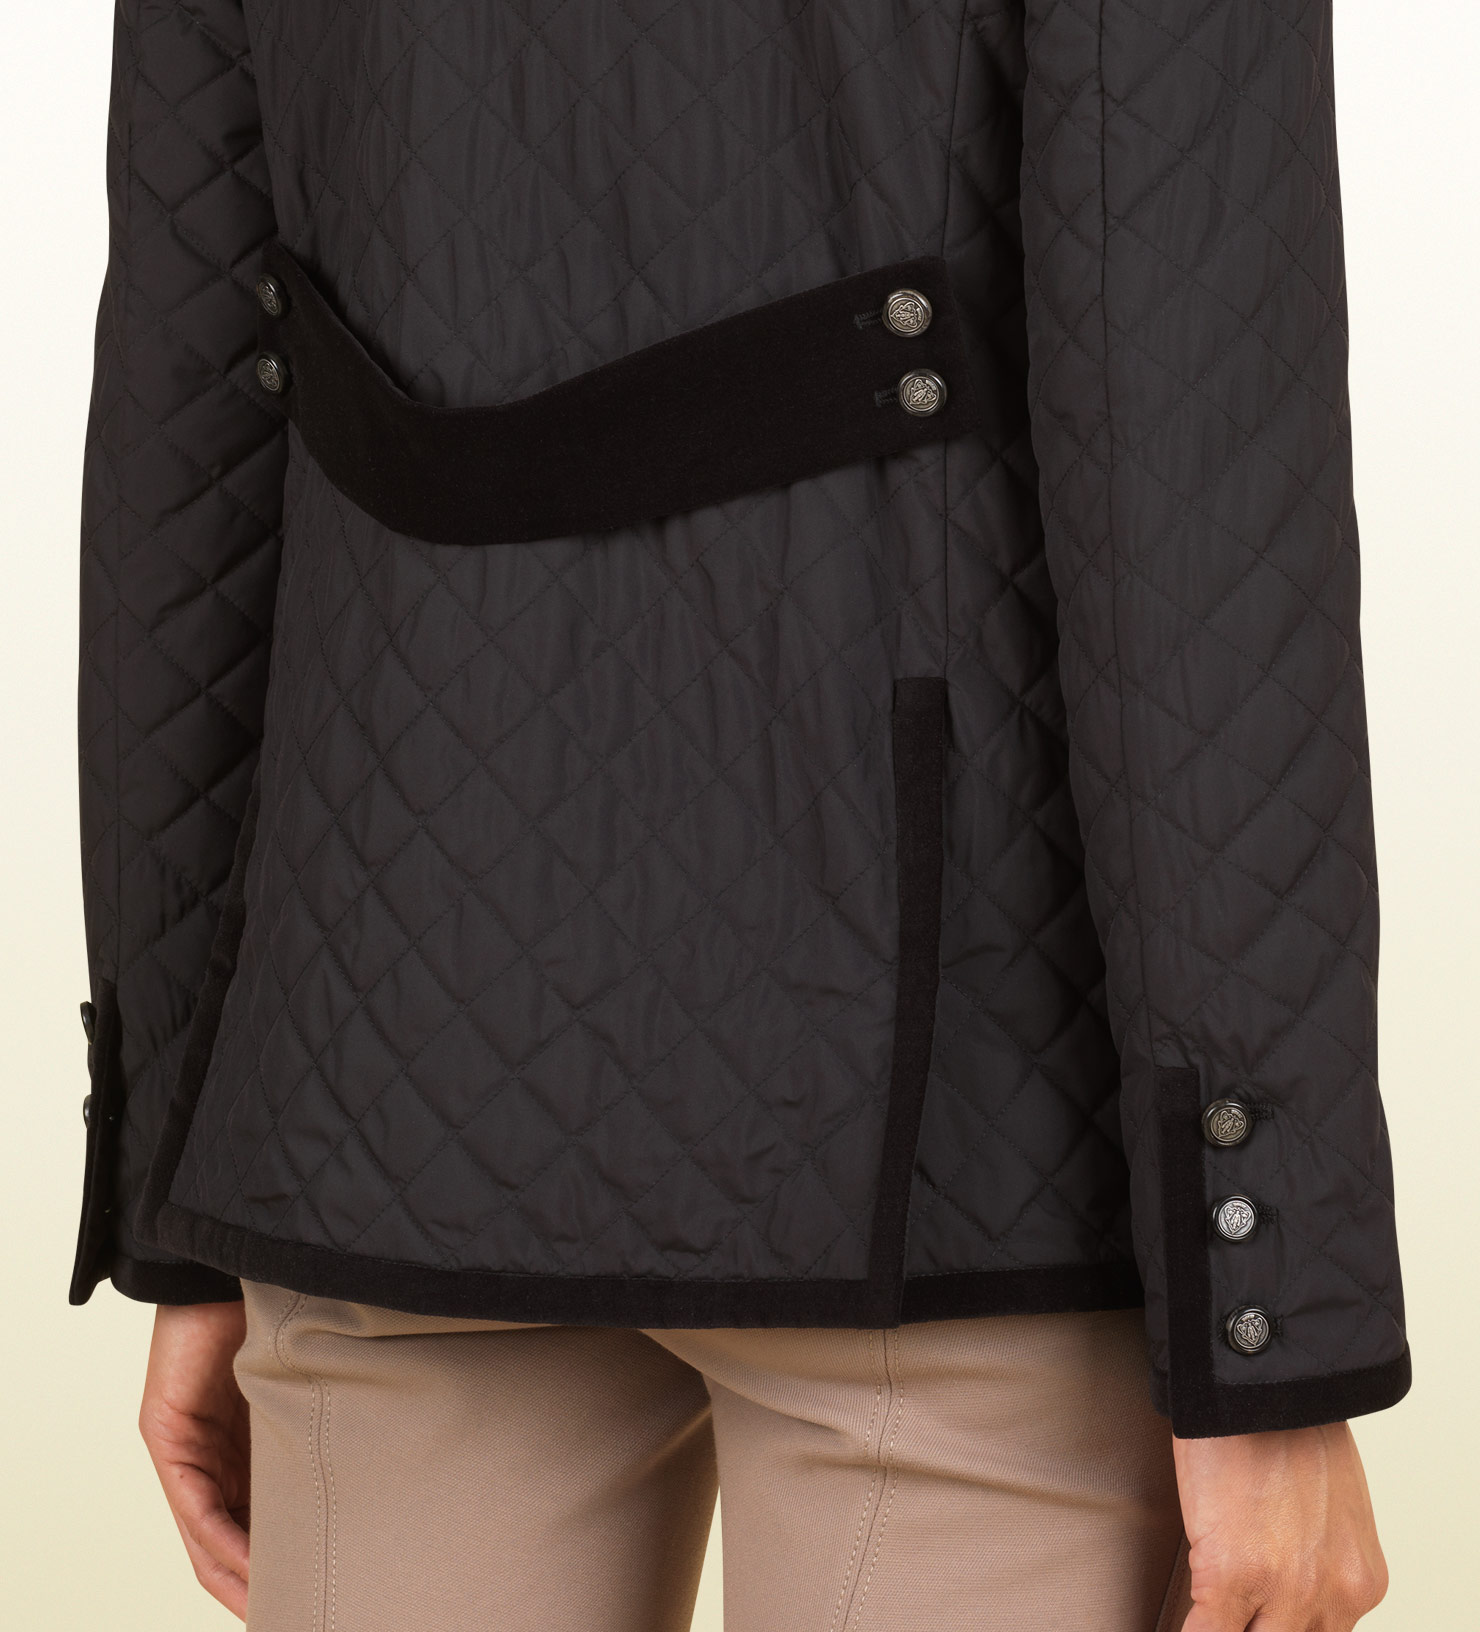 Lyst - Gucci Black Quilted Jacket From Equestrian Collection in ... : gucci quilted jacket - Adamdwight.com